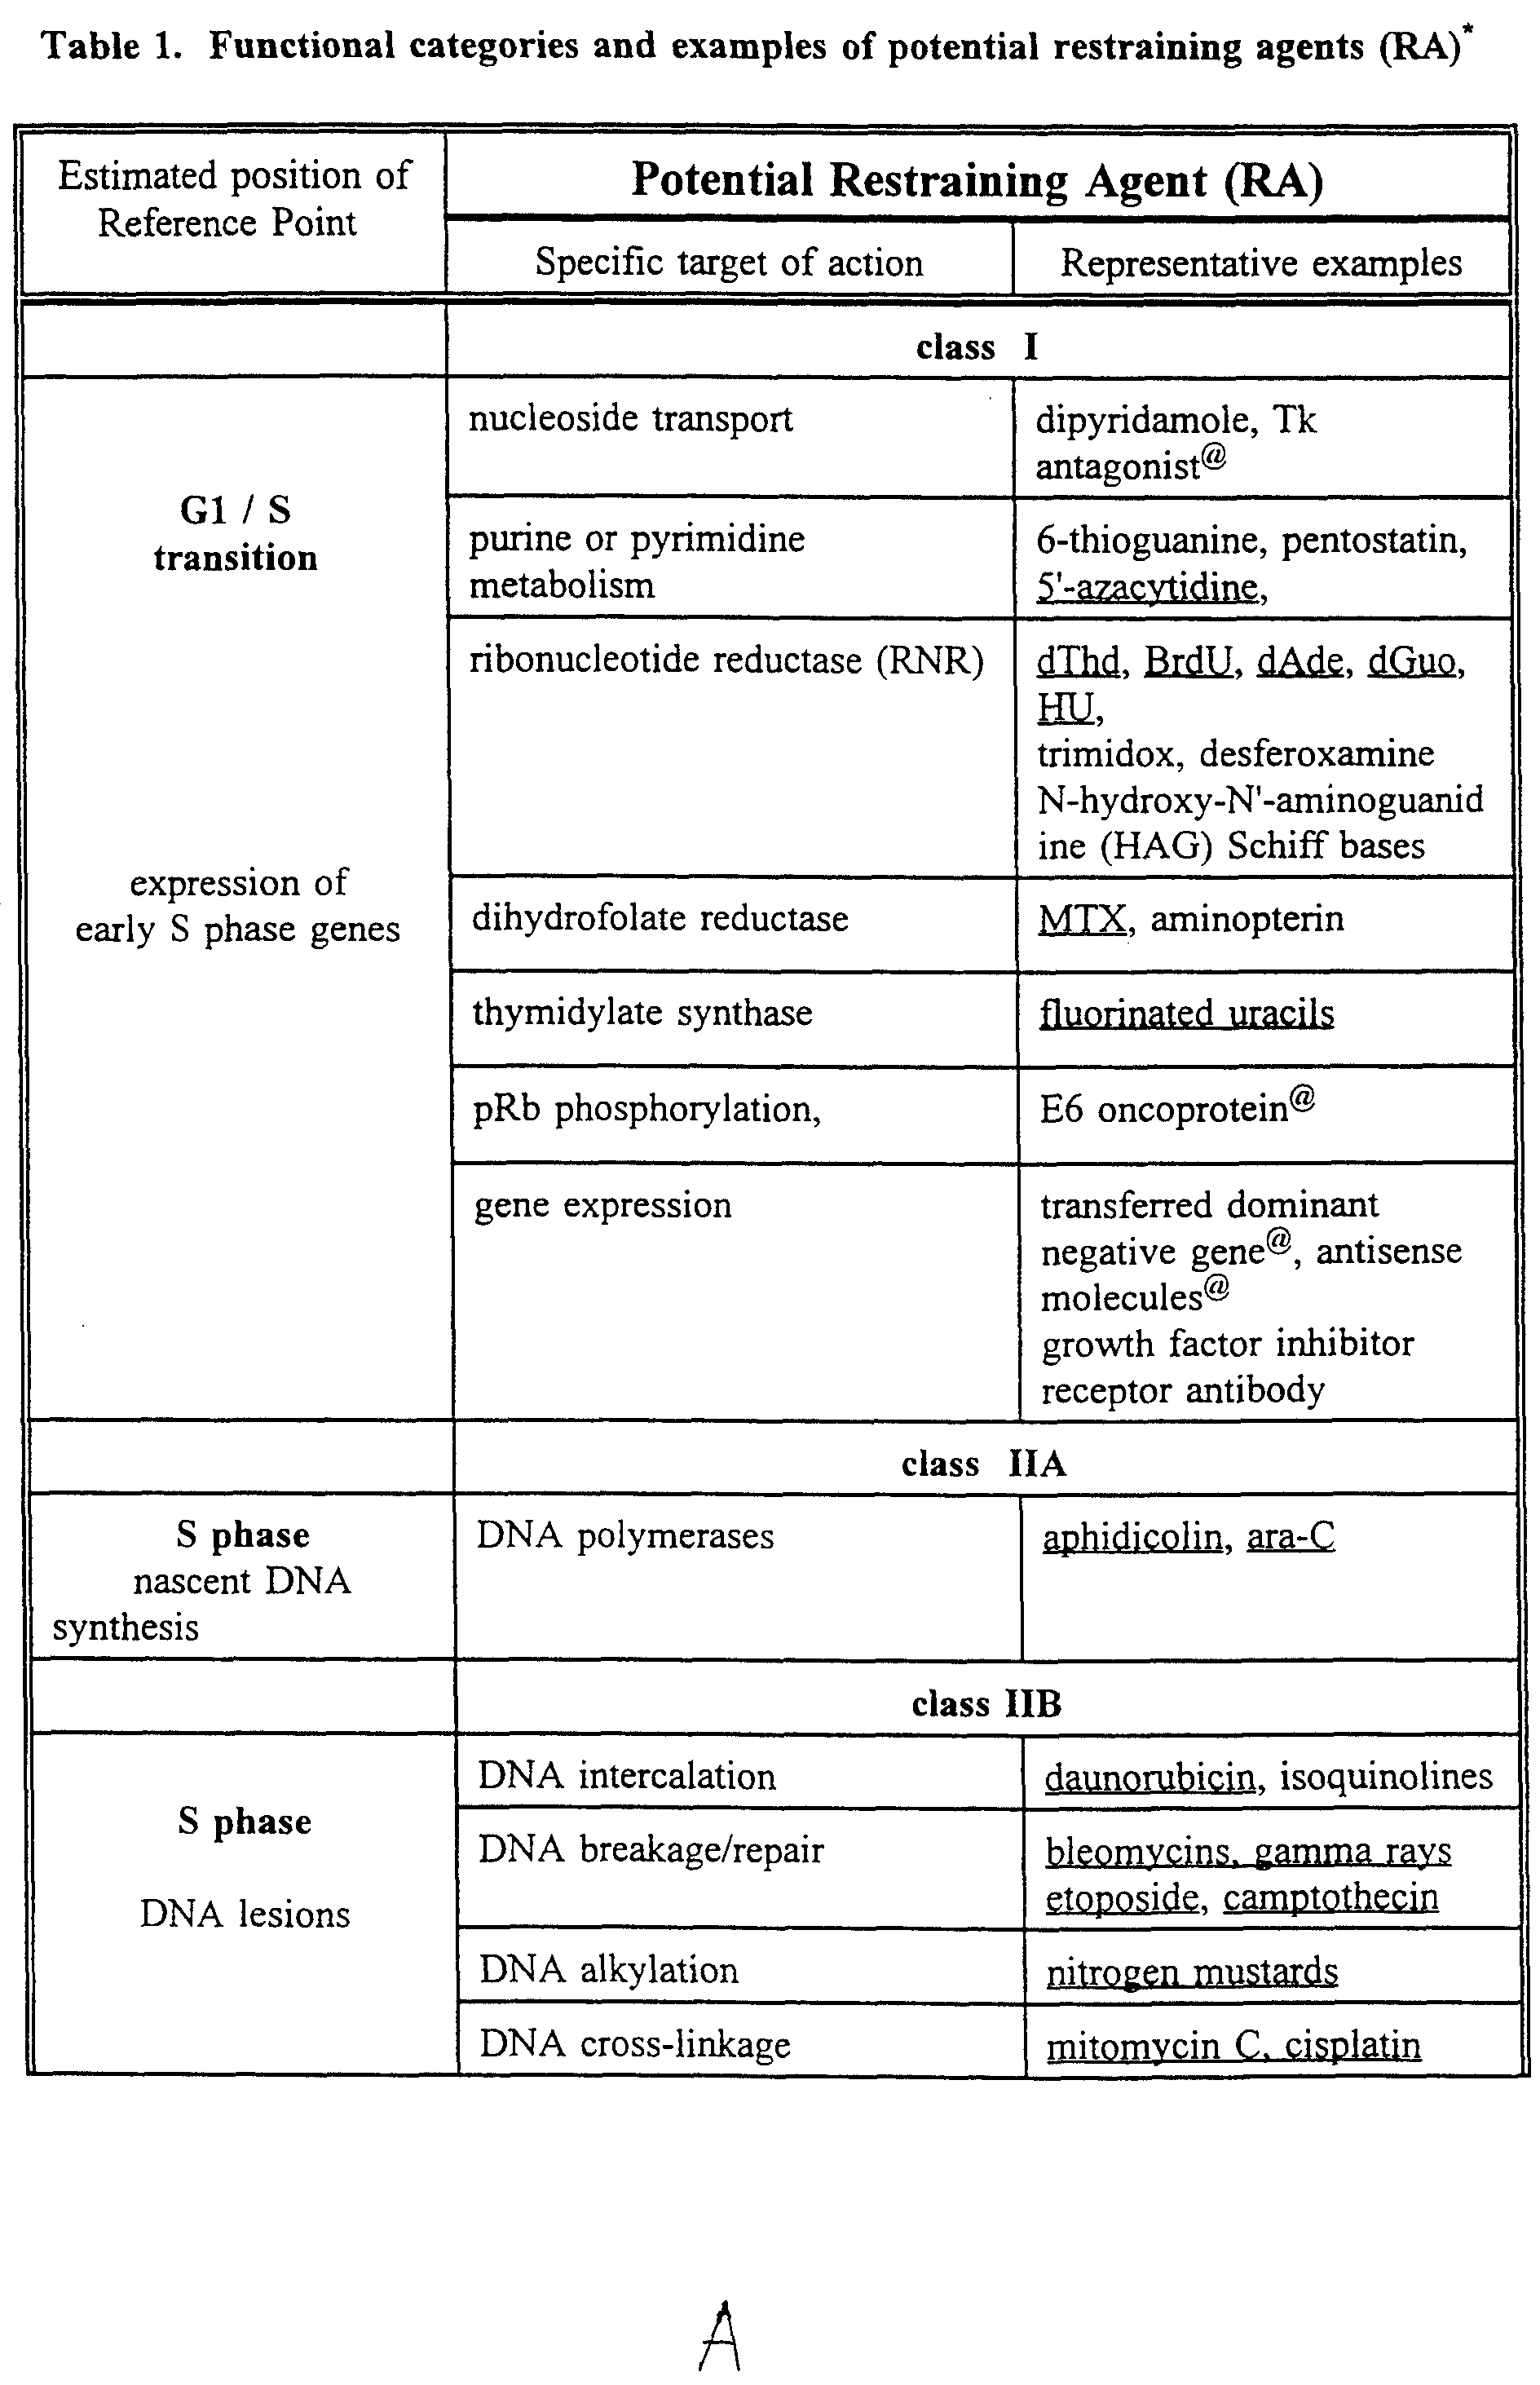 comparison between am fm and pm in tabular form pdf